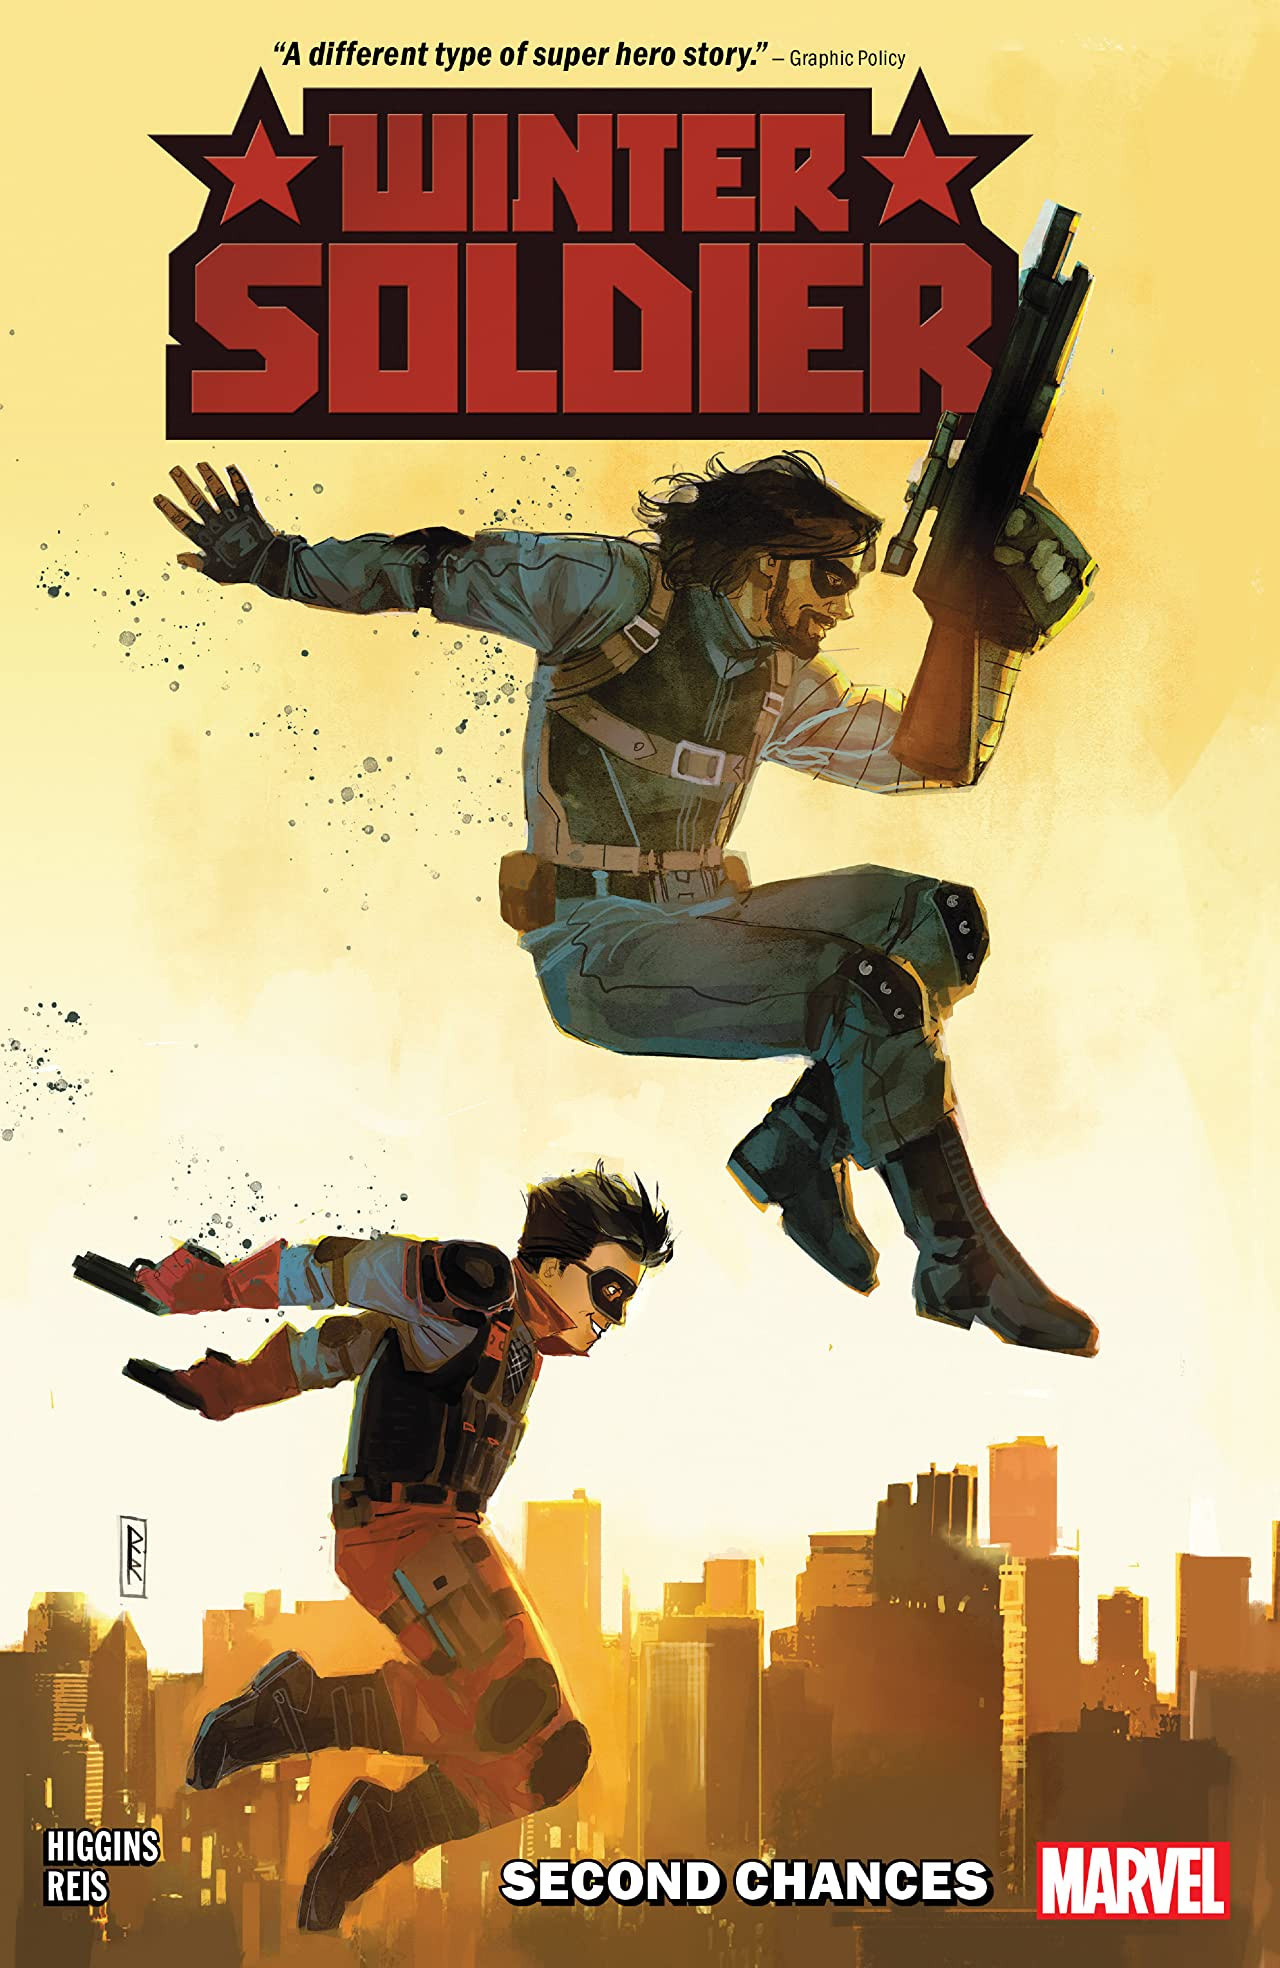 Winter Soldier TPB Vol 2 1: Second Chances